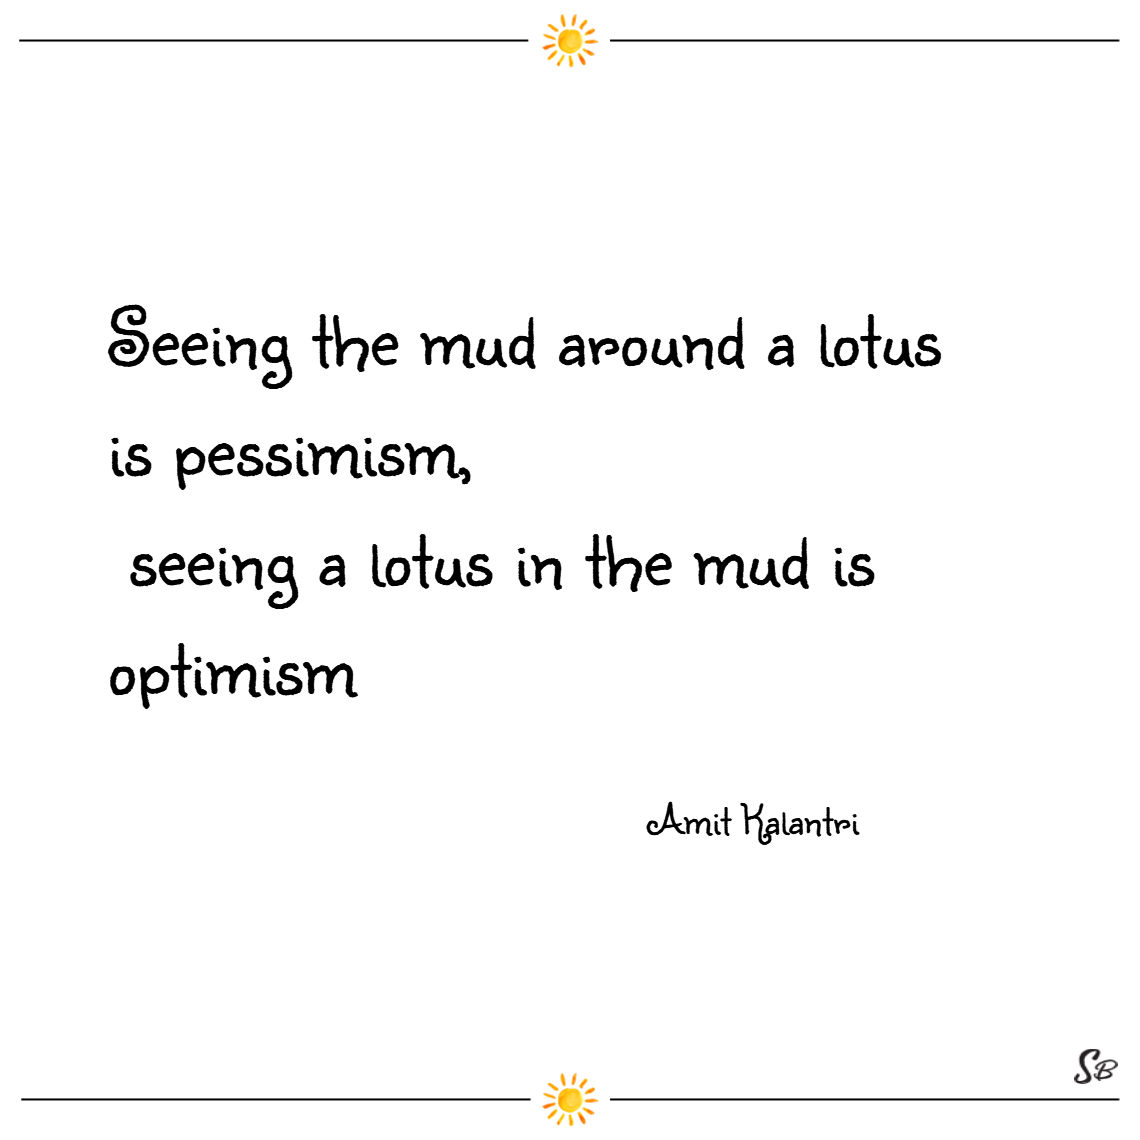 Seeing the mud around a lotus is pessimism, seeing a lotus in the mud is optimism. – amit kalantri